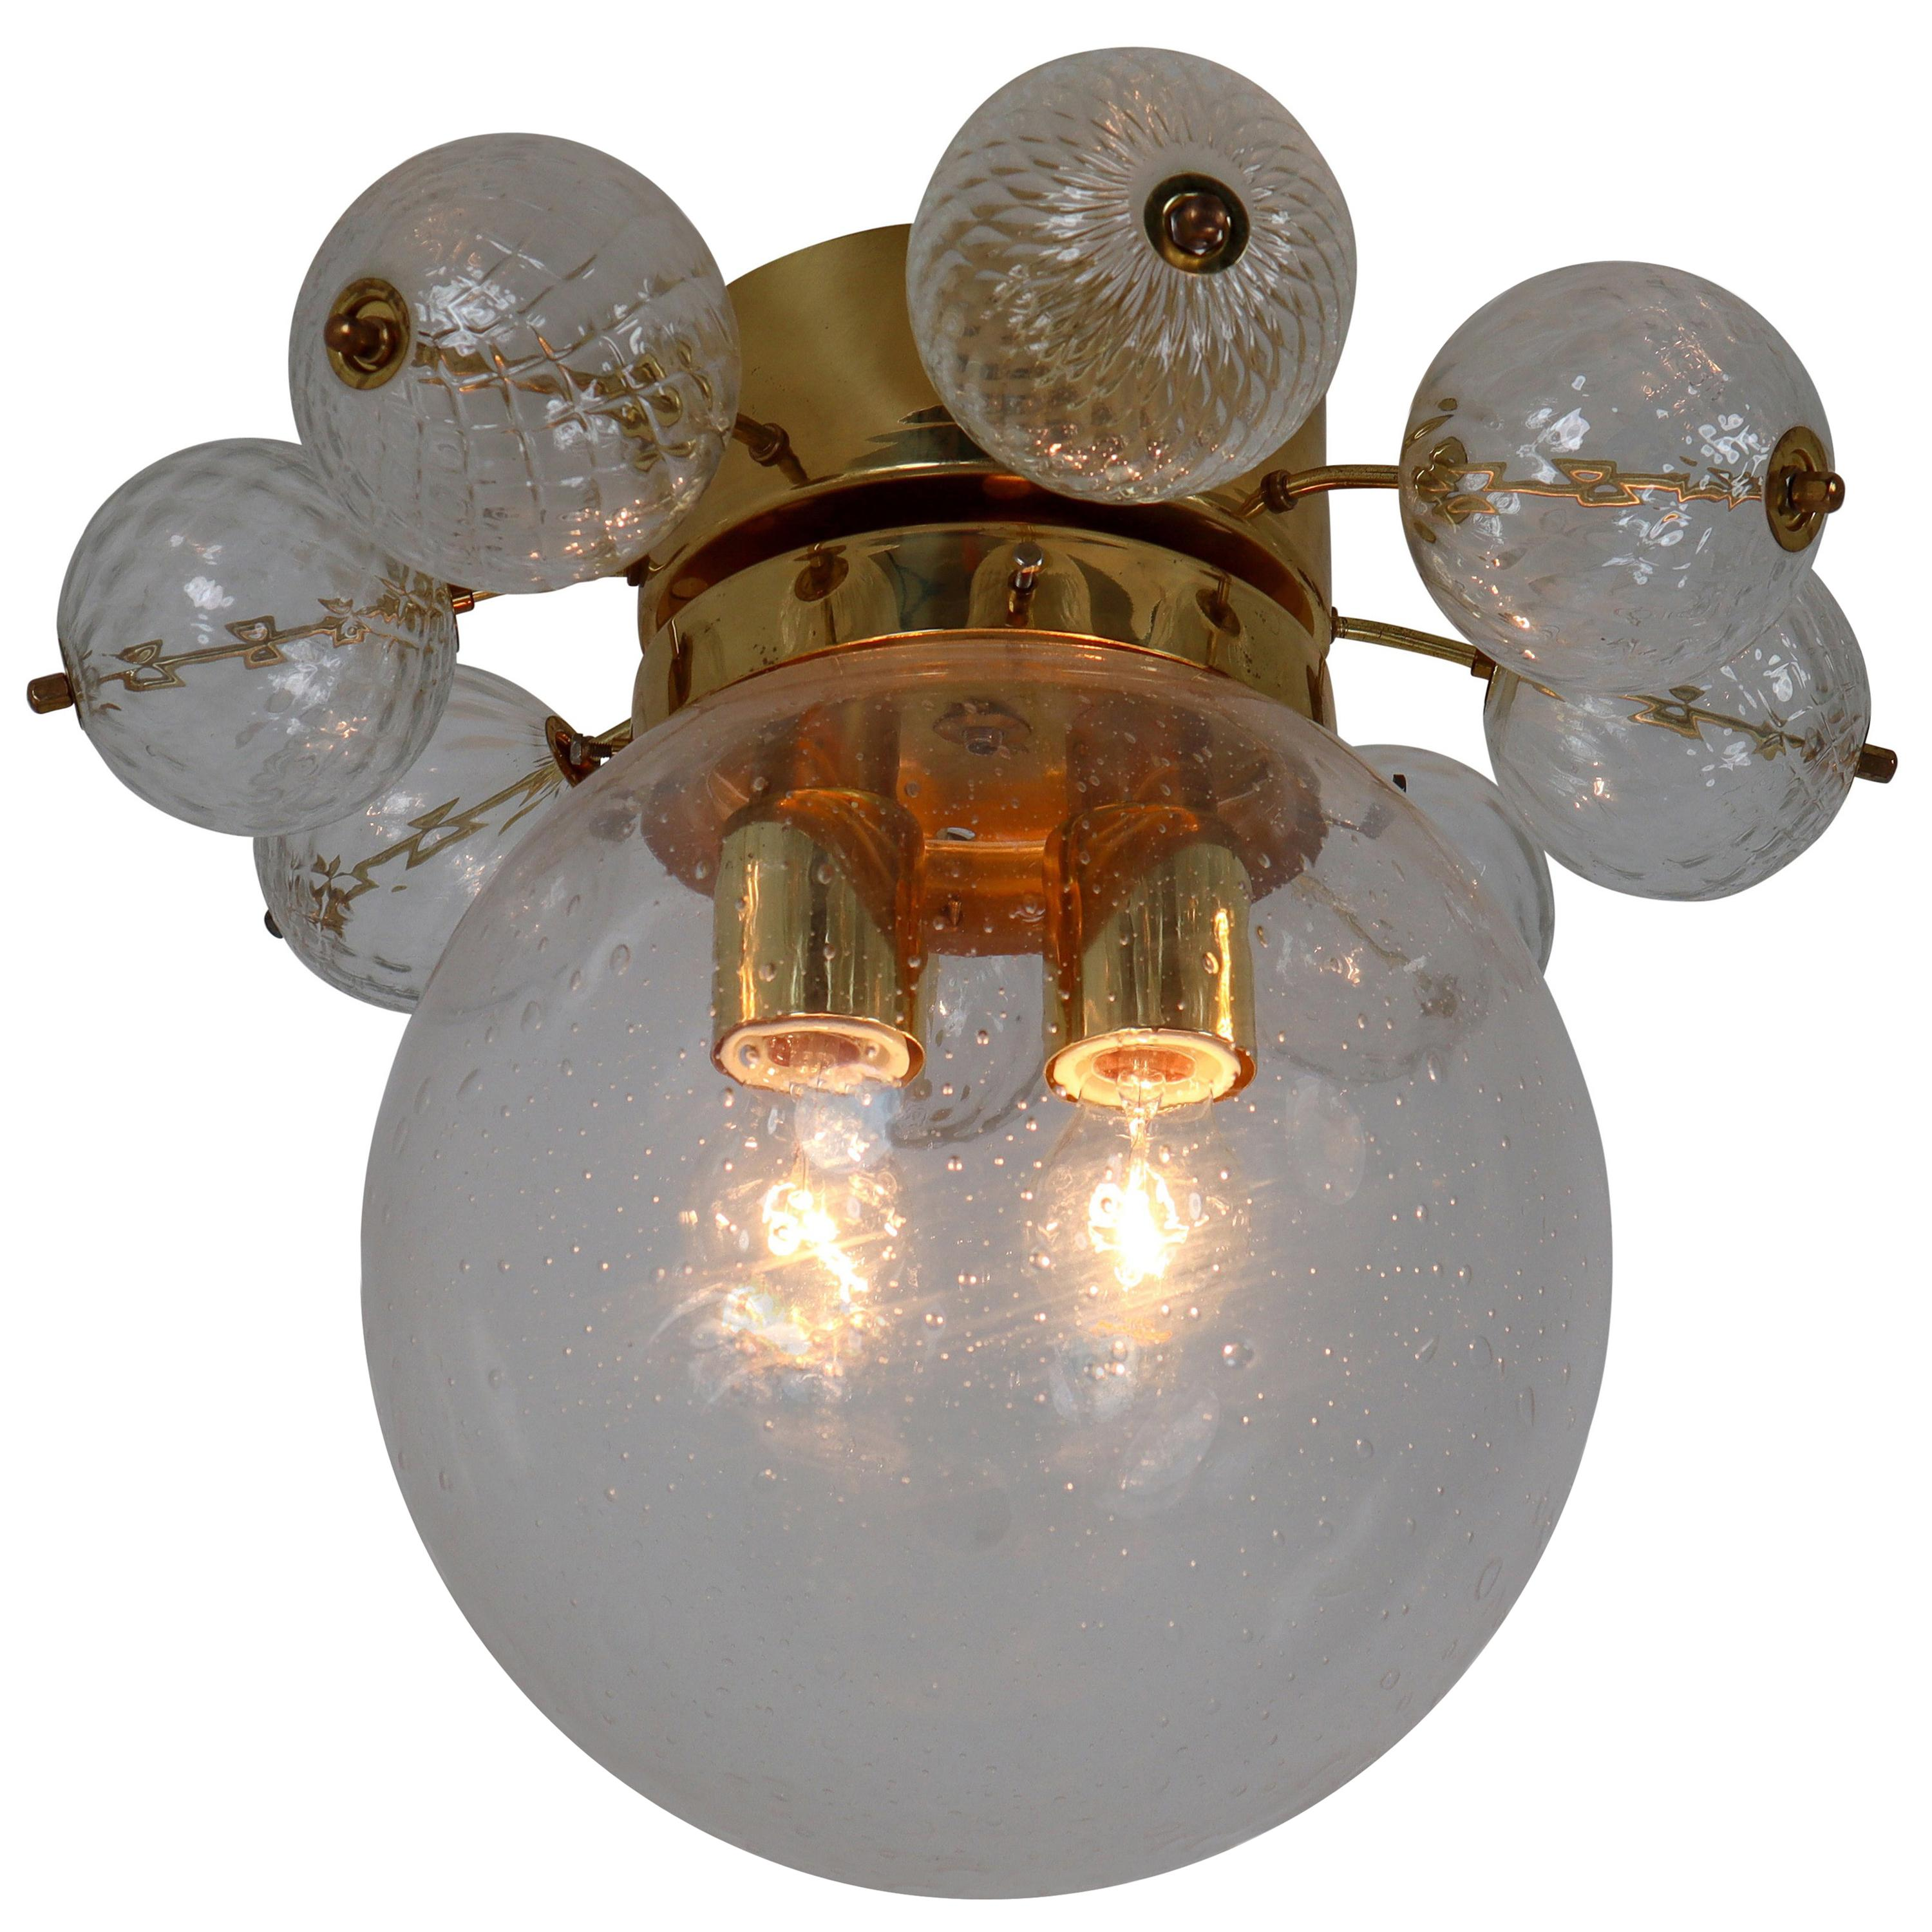 Large Midcentury Brass Ceiling Lamp-Chandeliers with Hand Blown Glass